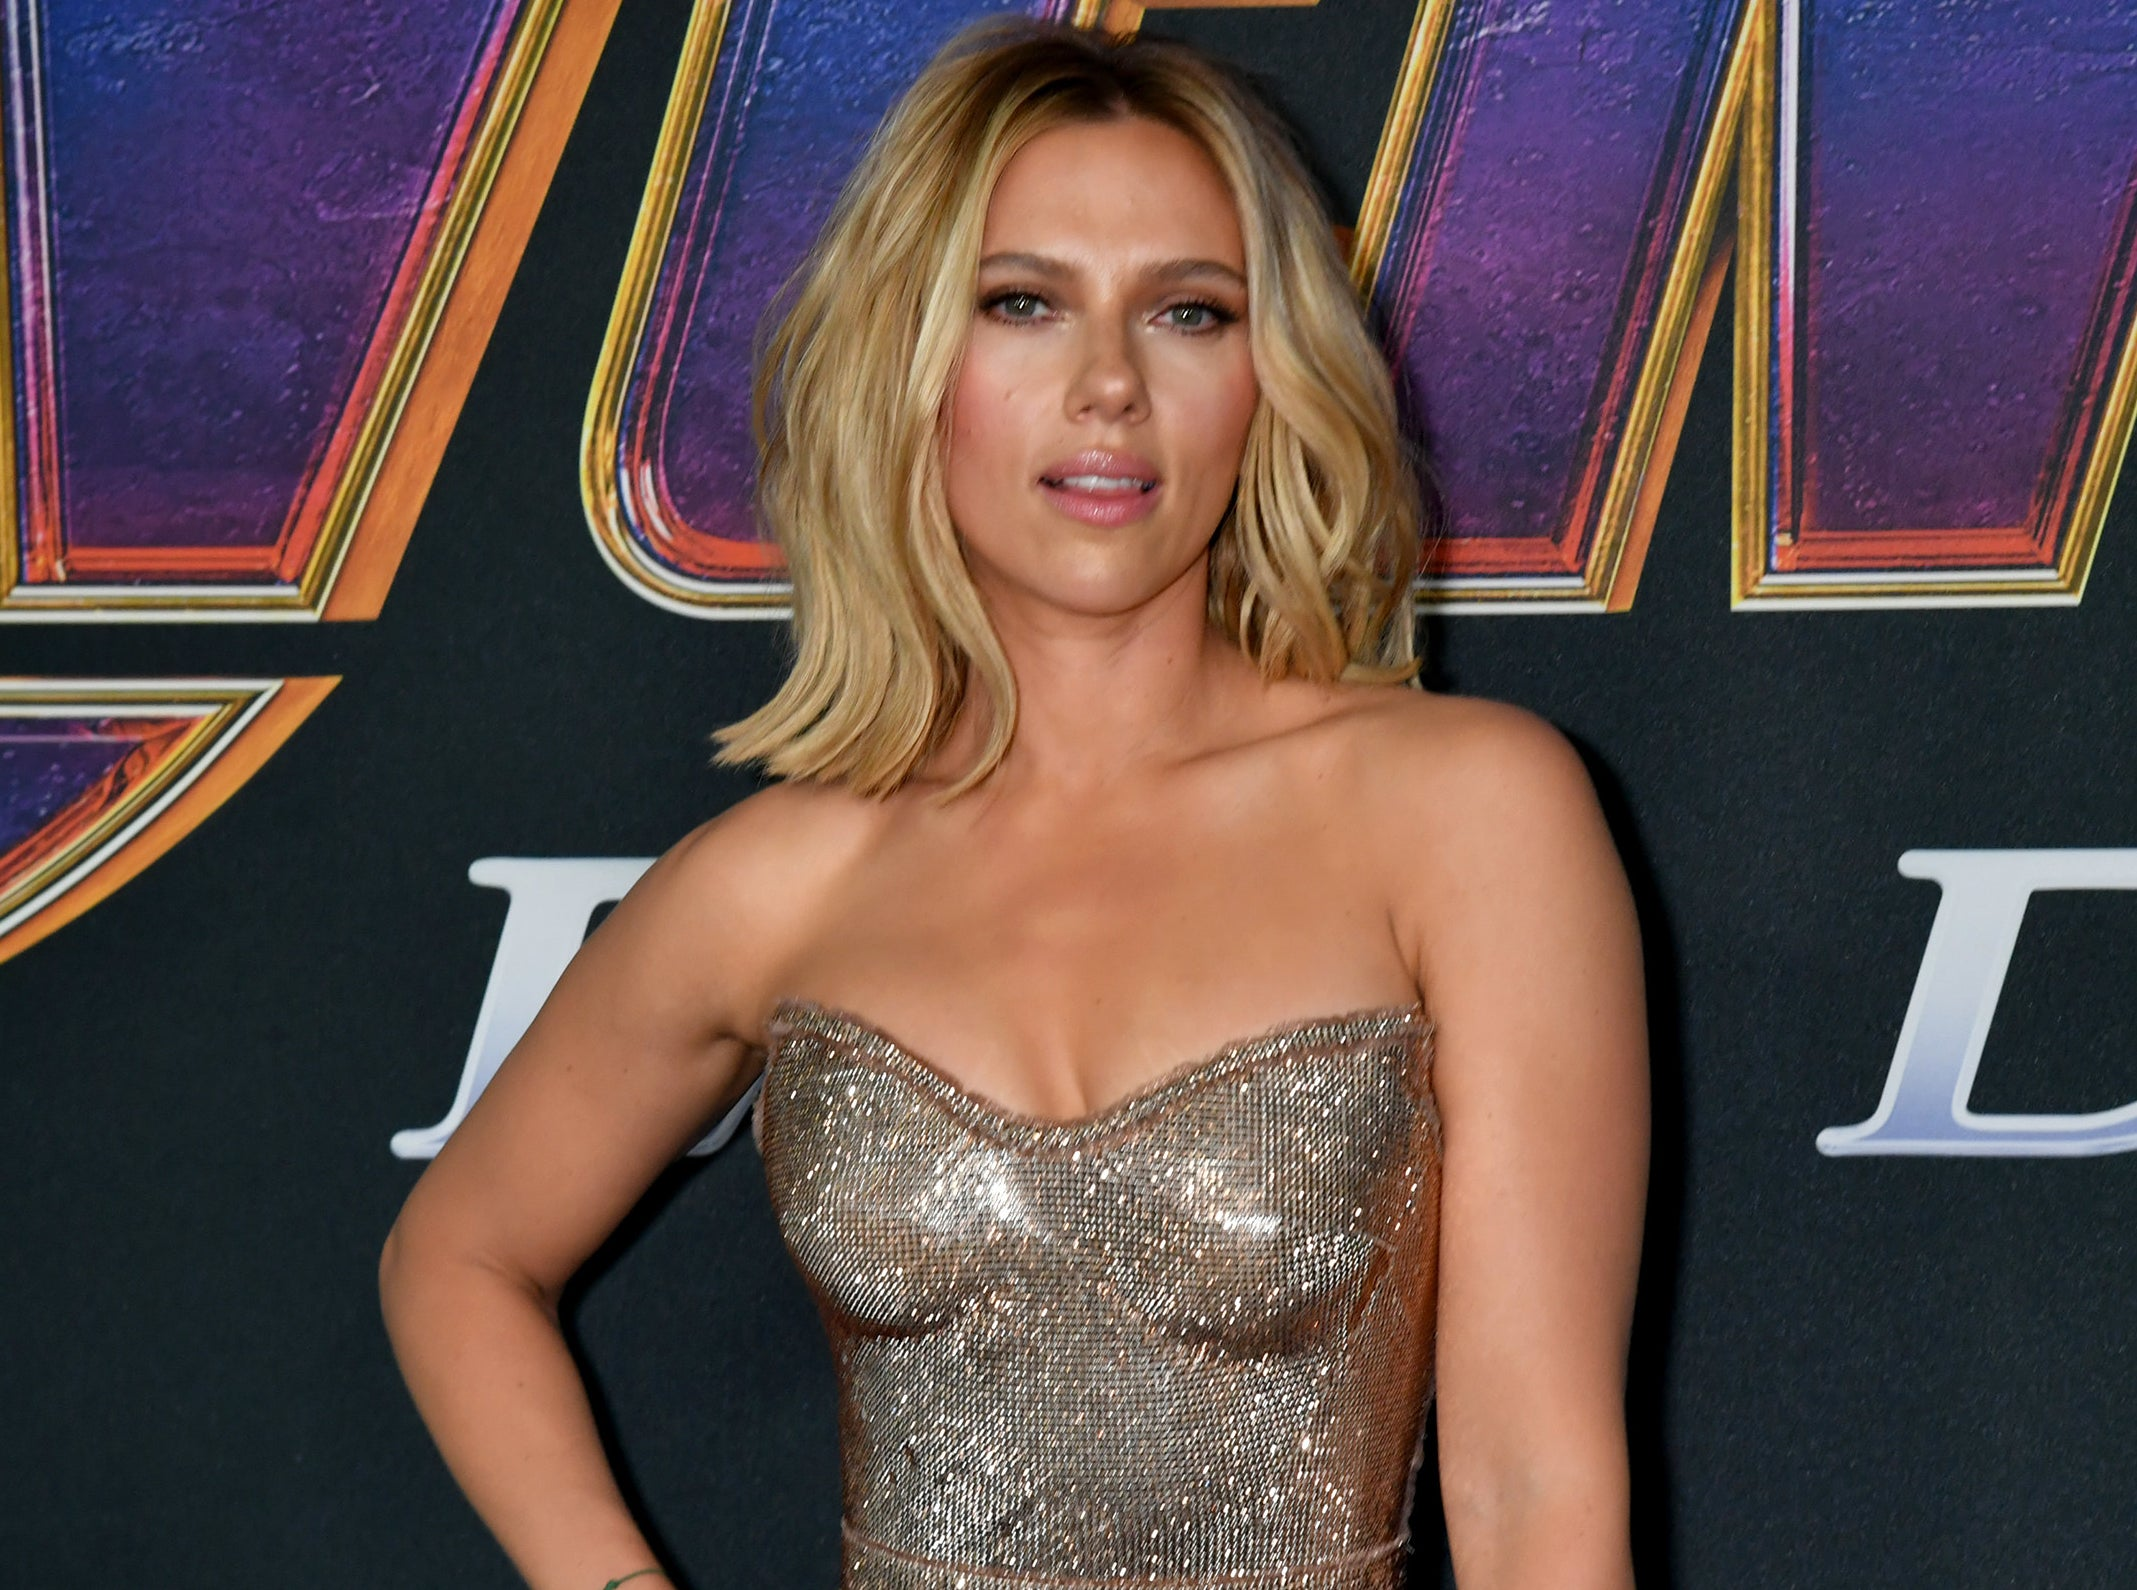 Scarlett wears a strapless silver beaded gown to a premiere